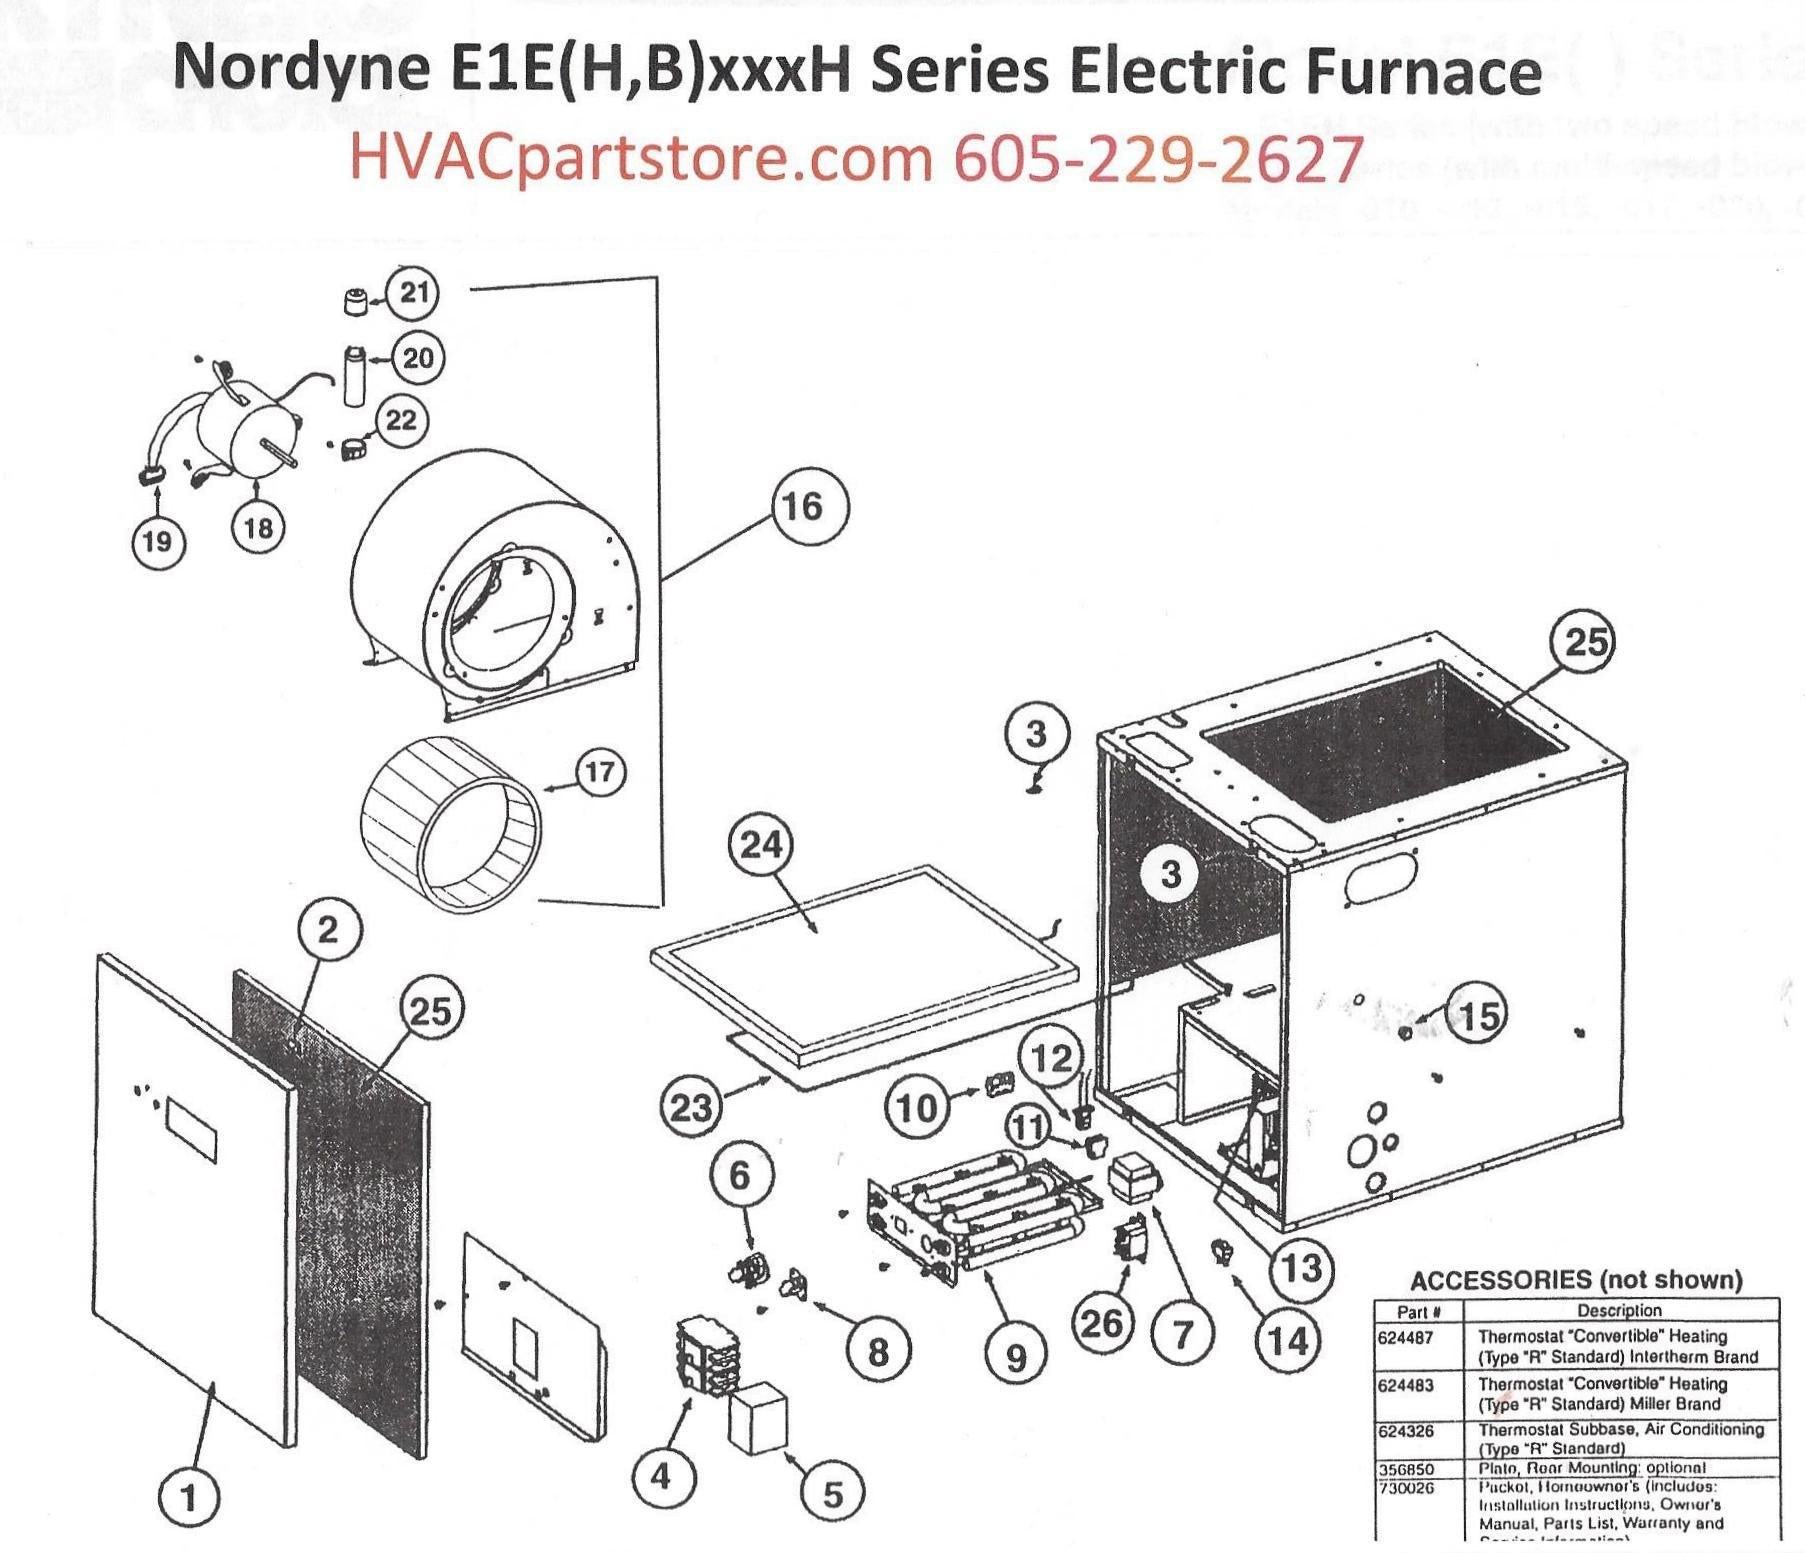 relay pr380 schematic wiring diagram e1eh015h nordyne electric furnace parts     hvacpartstore  e1eh015h nordyne electric furnace parts